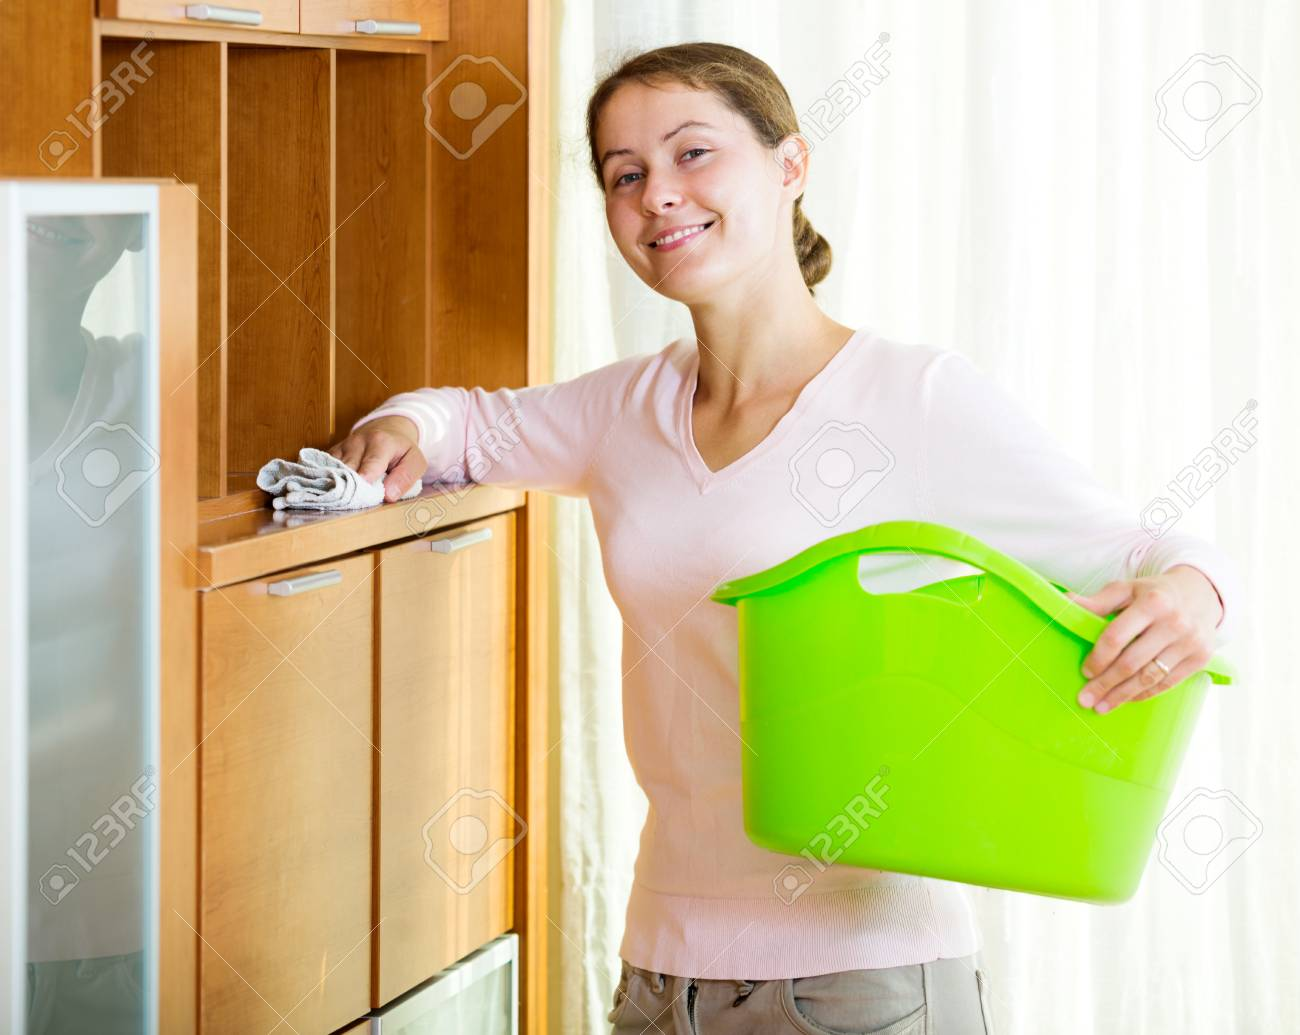 dusting furniture. Portrait Adult Woman Dusting Furniture At Home And Smiling Stock Photo - 47345232 H